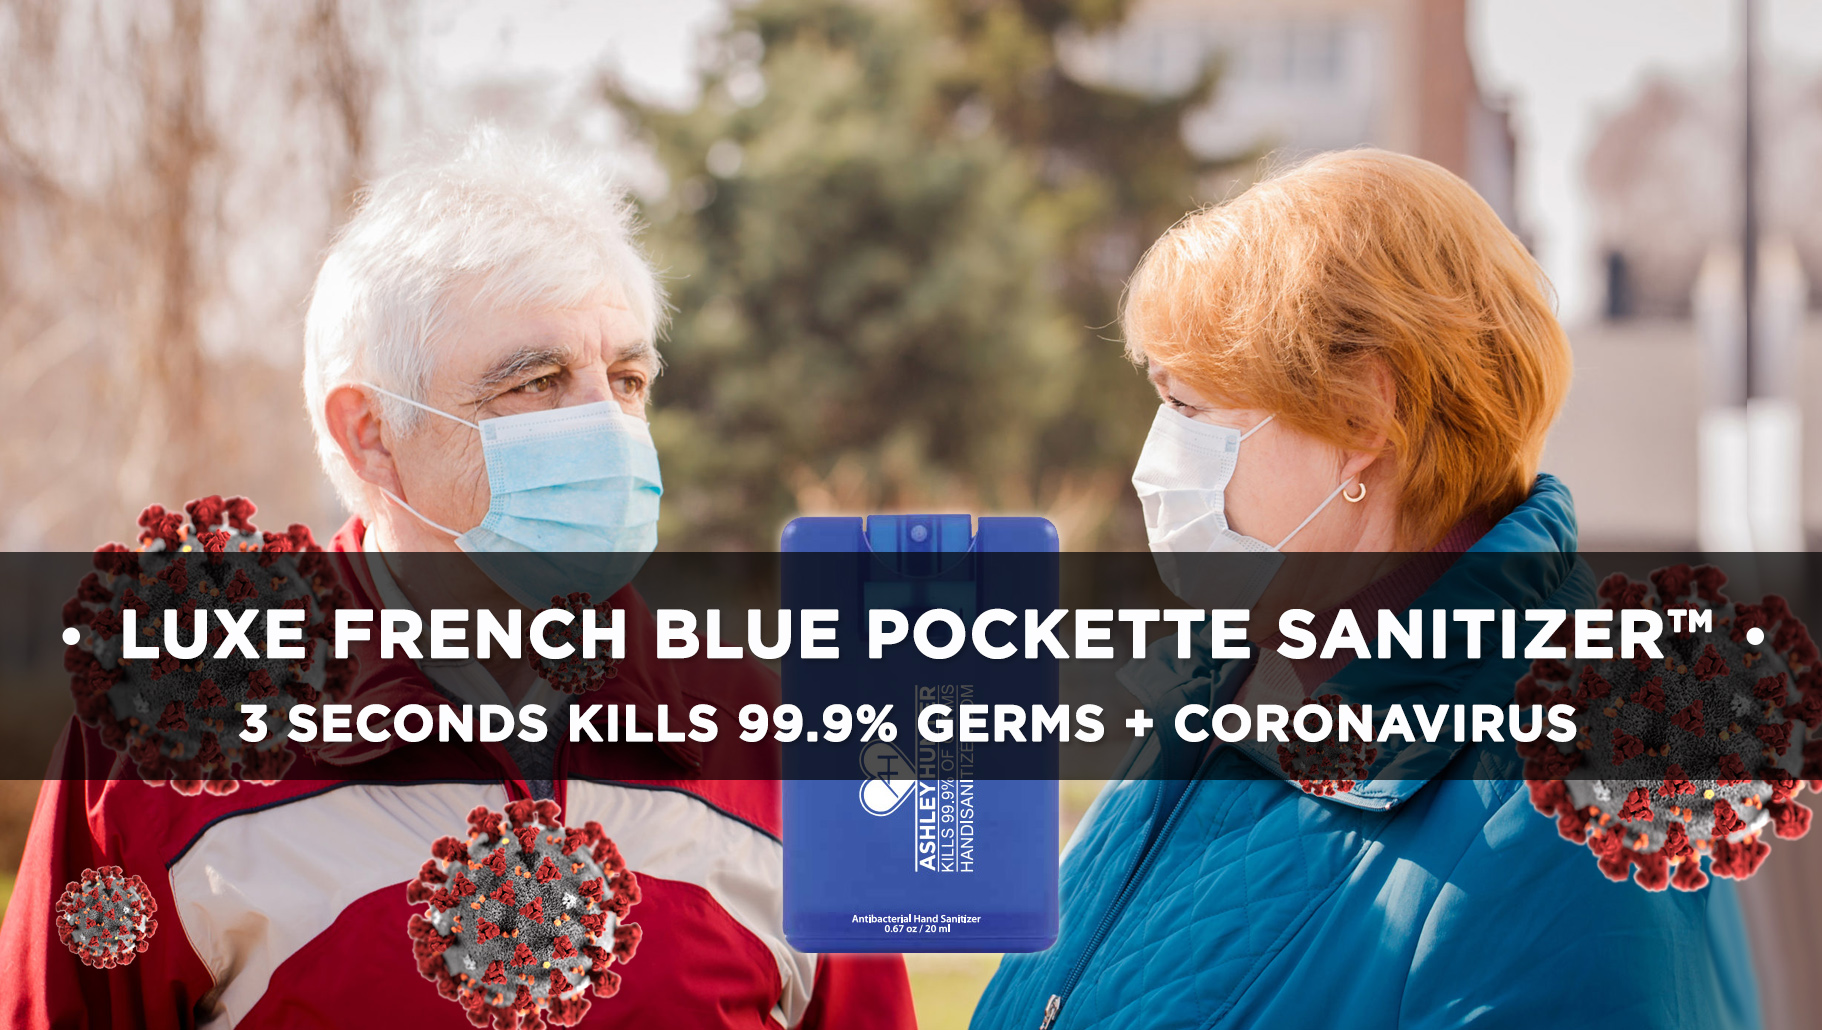 LUXE FRENCH BLUE POCKETTE SANITIZER™